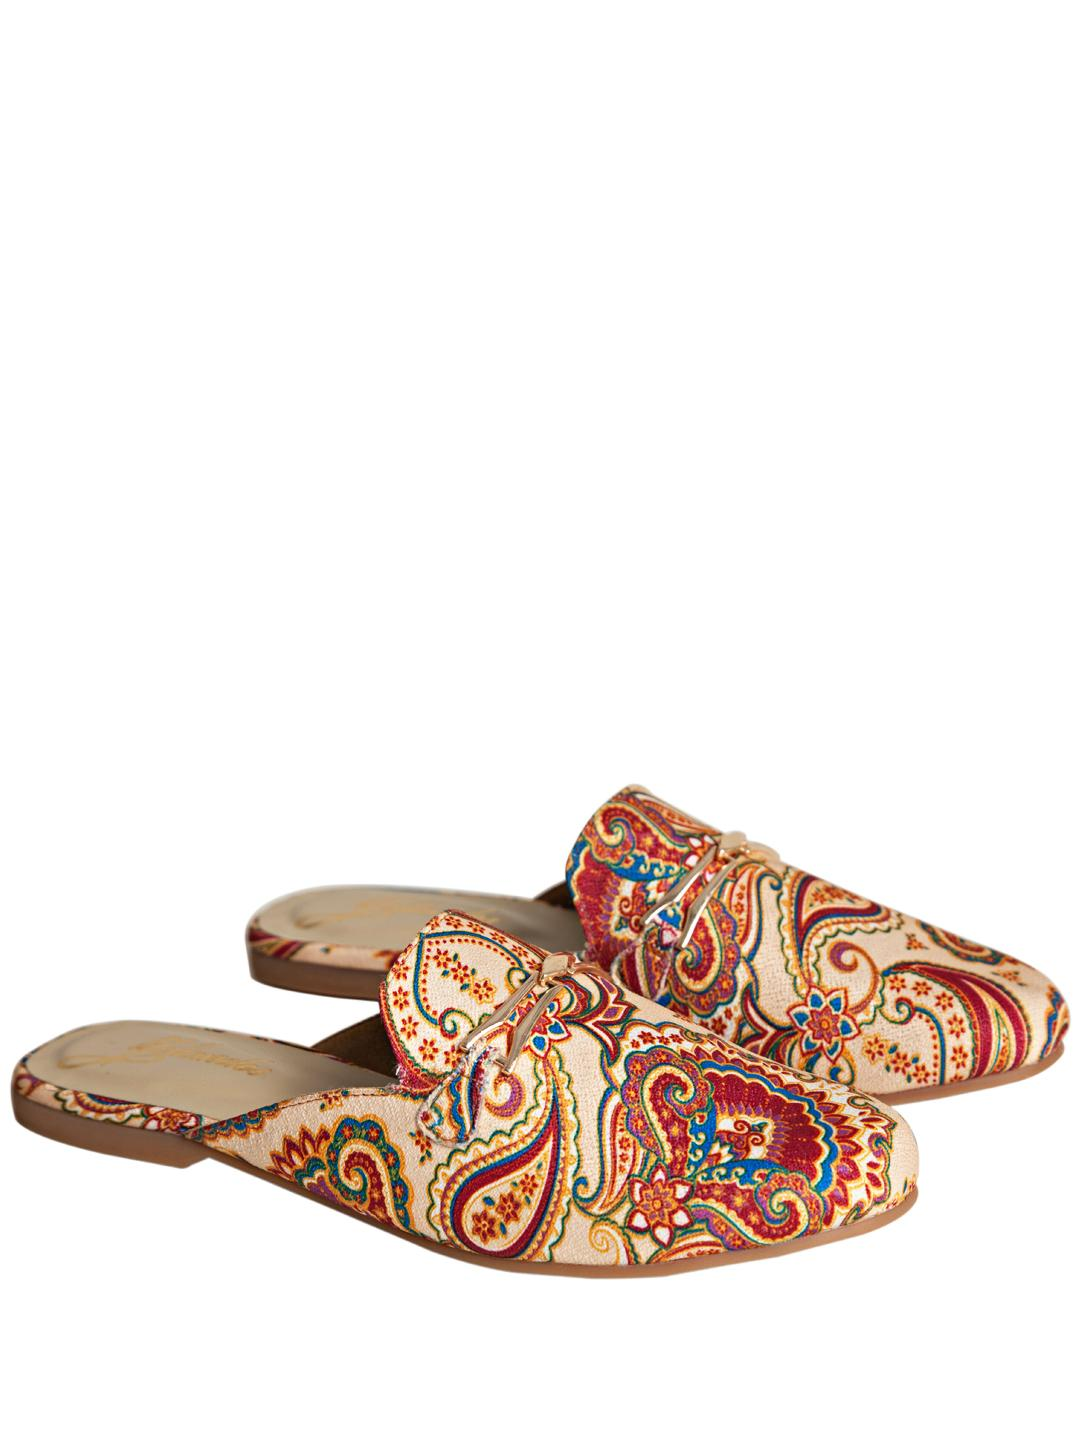 Yellow Soles Beige Paisley Embroidered Horsebit Mules 1